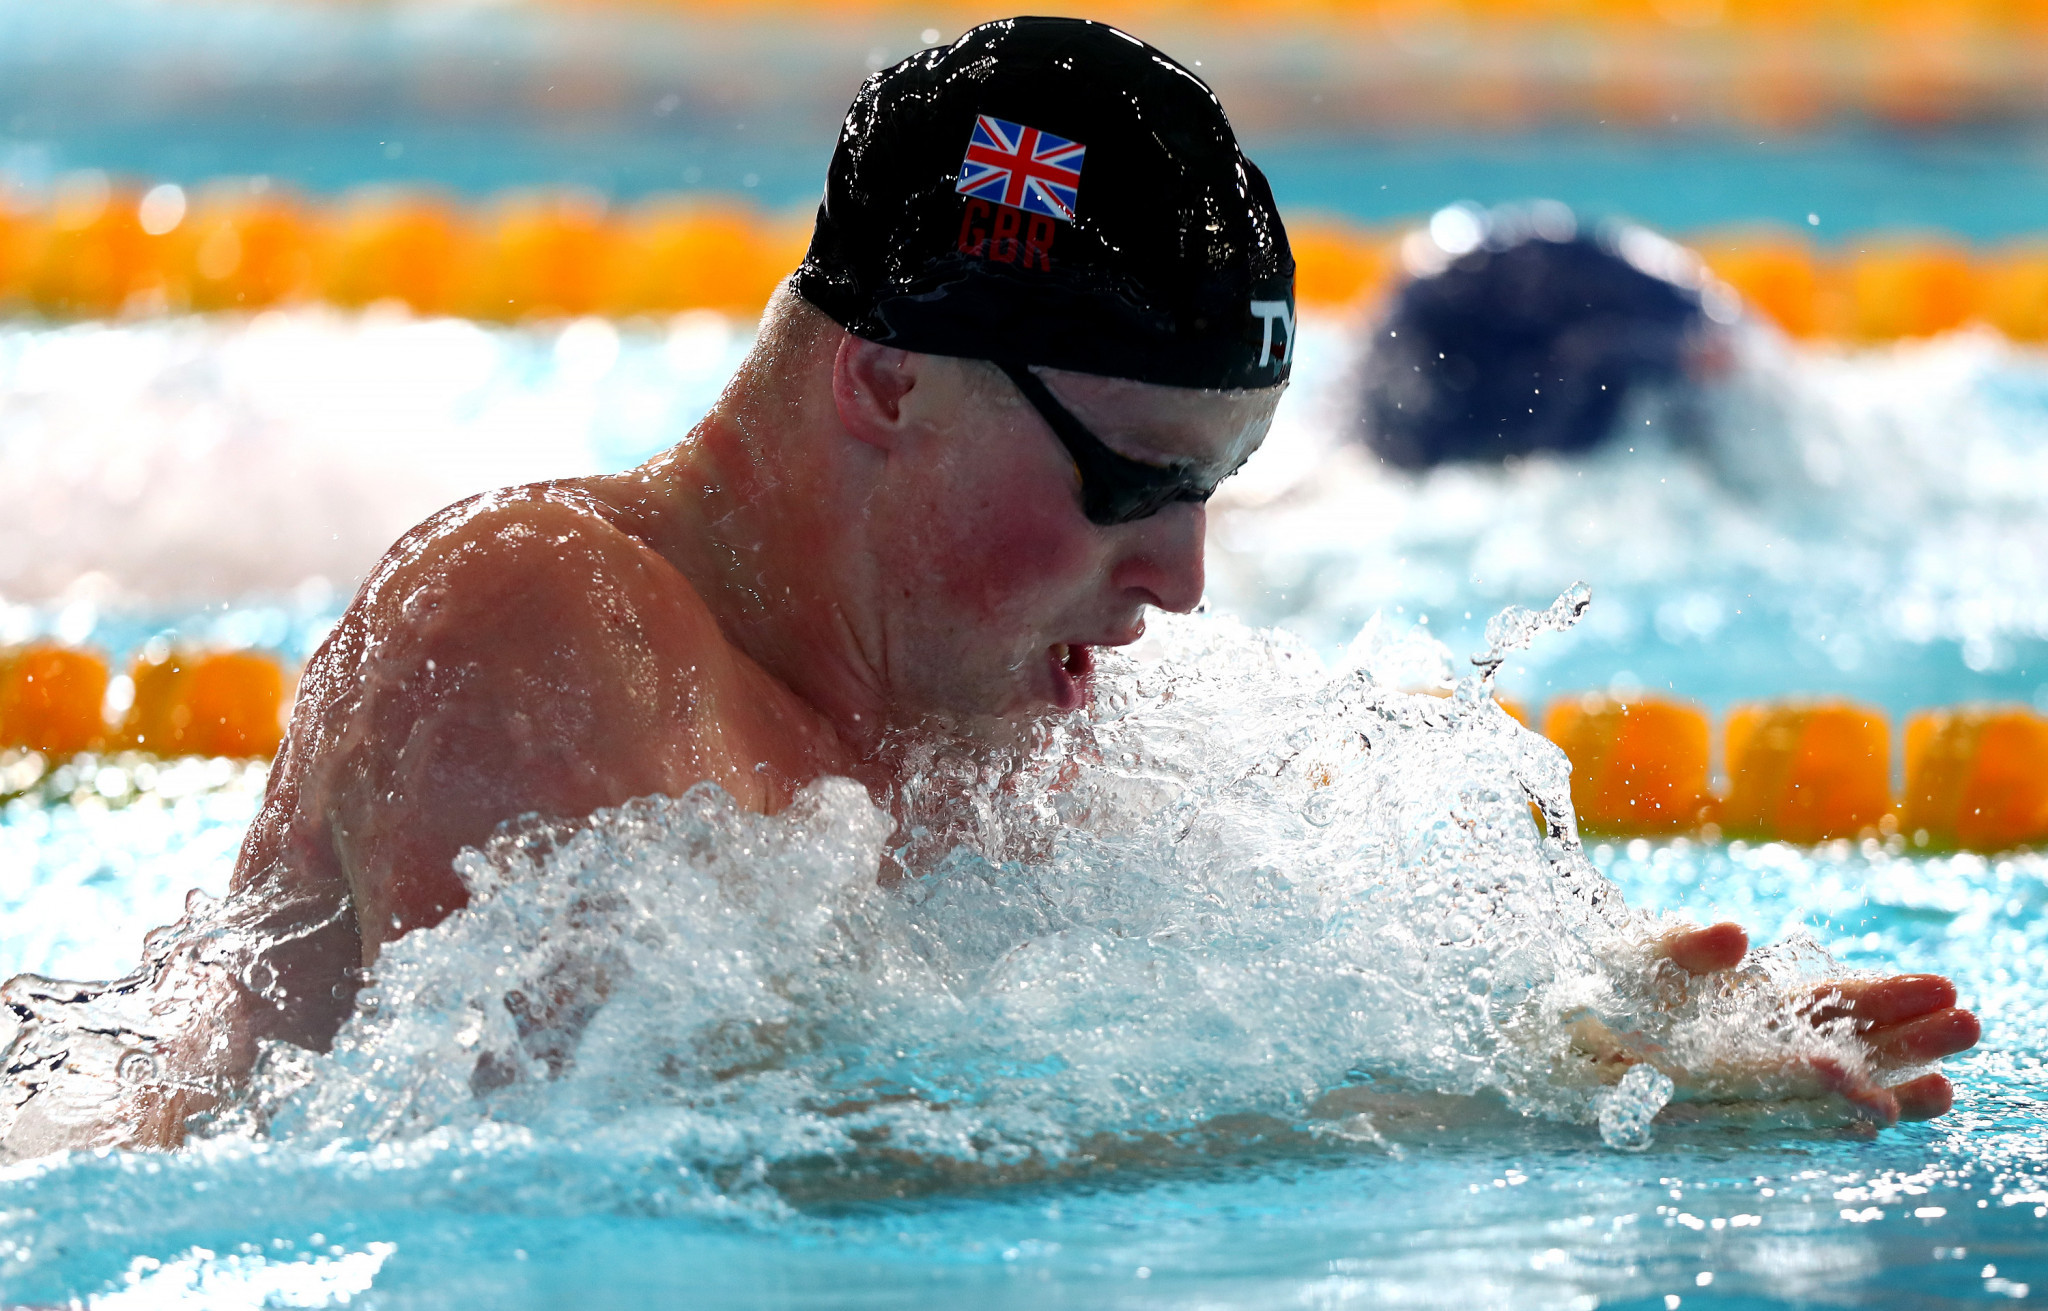 Britain's Adam Peaty was among the top names set to compete in the 2018 Energy for Swim meeting in Turin later this month before it was cancelled after FINA threatened to ban anyone who took part ©Getty Images